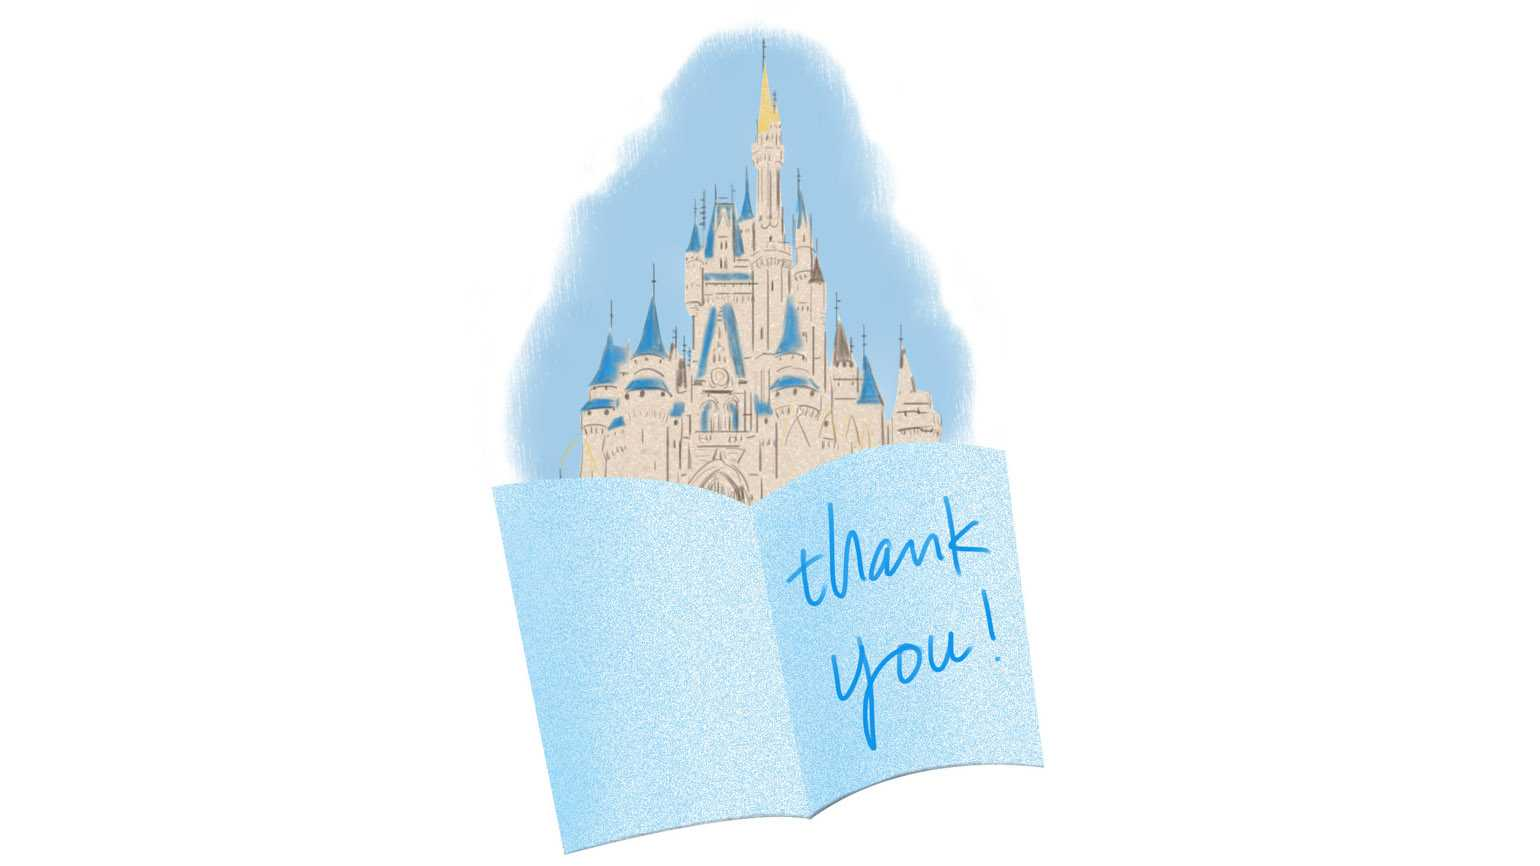 An artist's rendering of a Thank You card with Walt Disney World in the background.